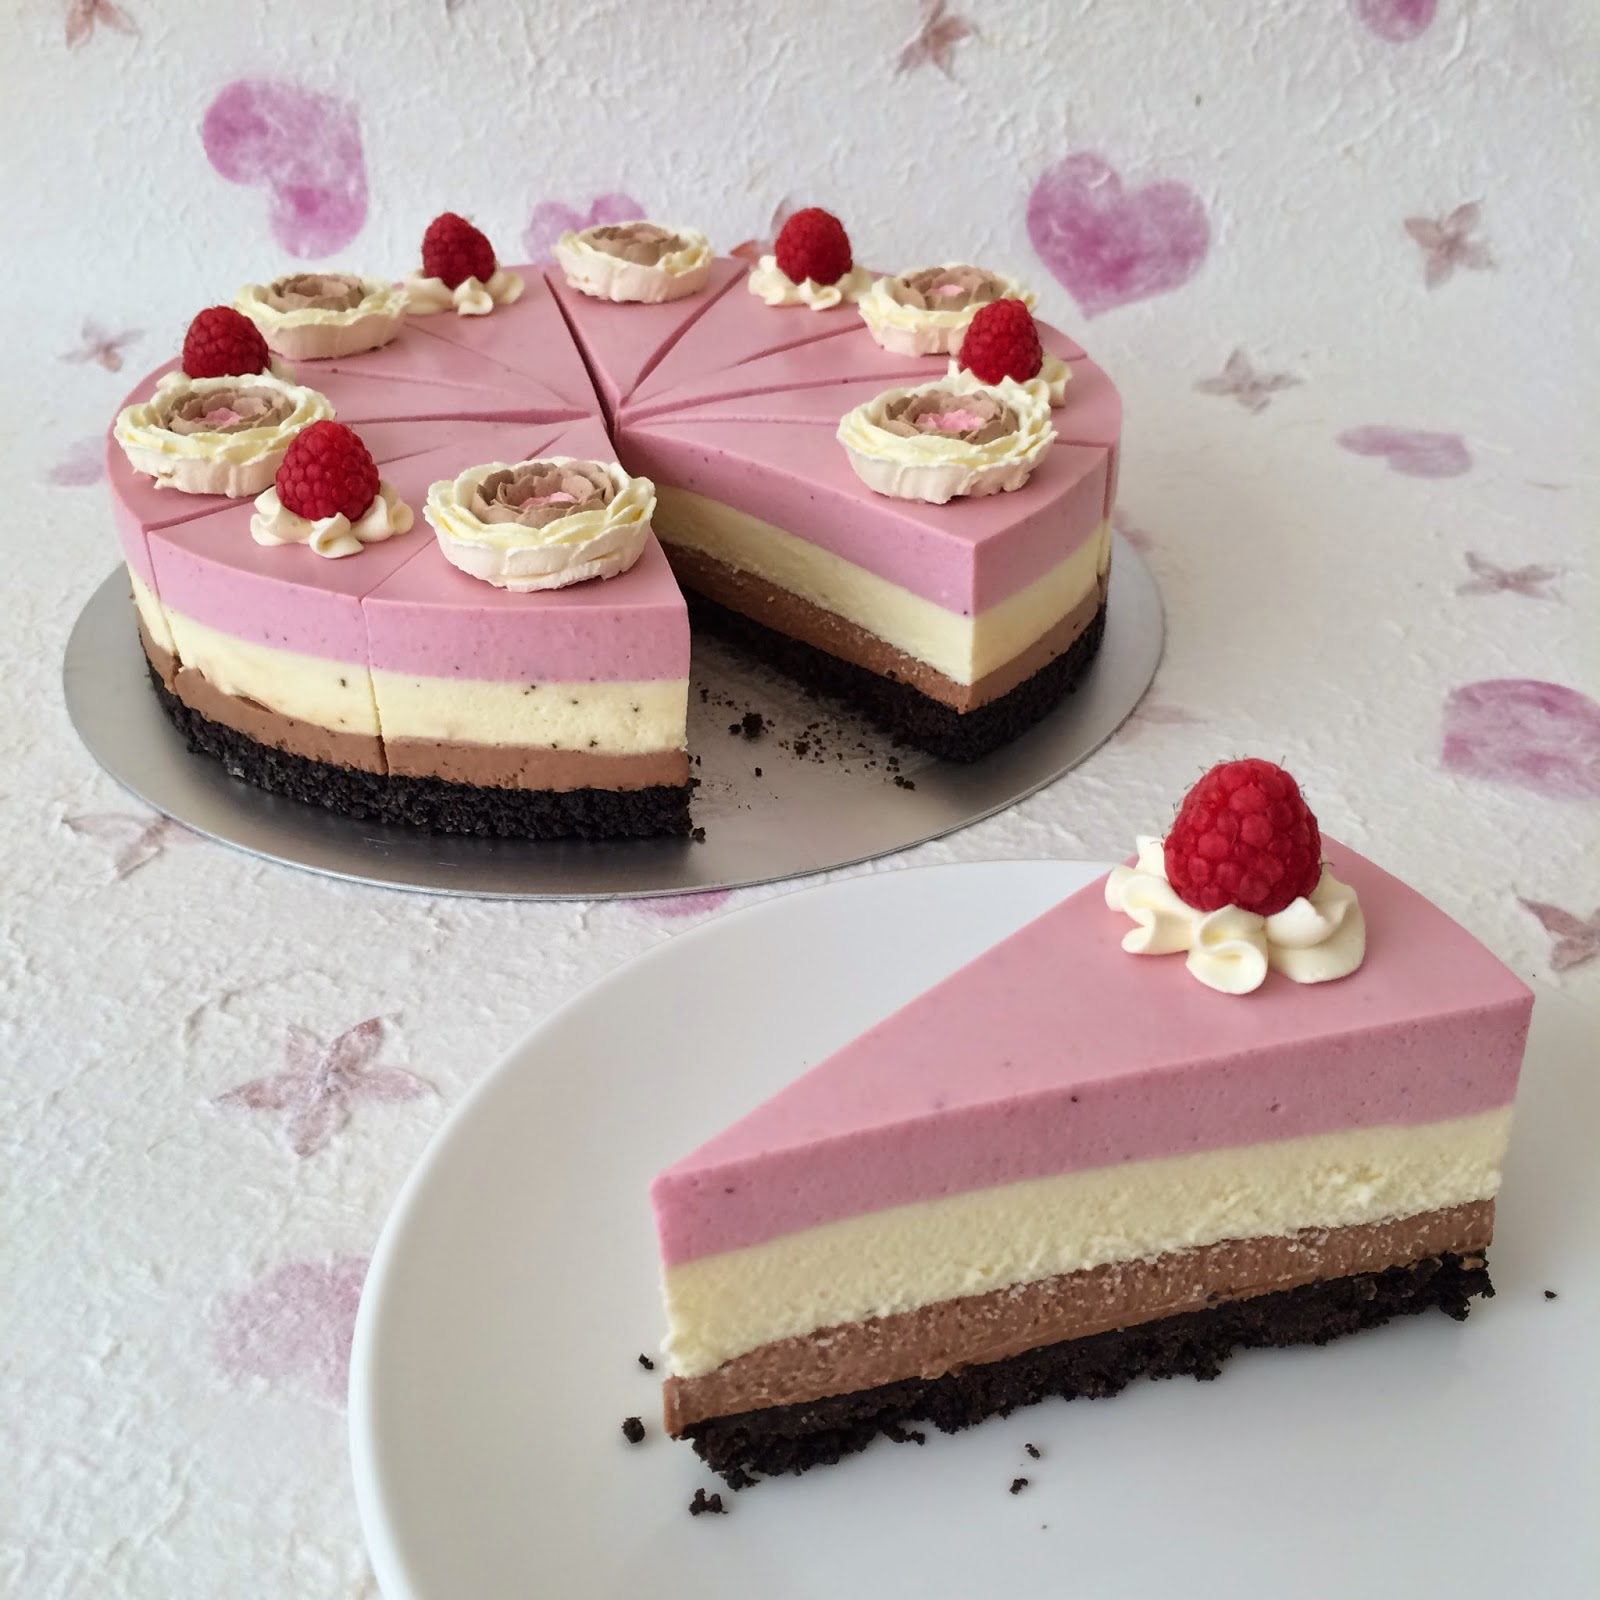 favourite cheesecakes i've ever made! Been thinking about Neapolitan ...